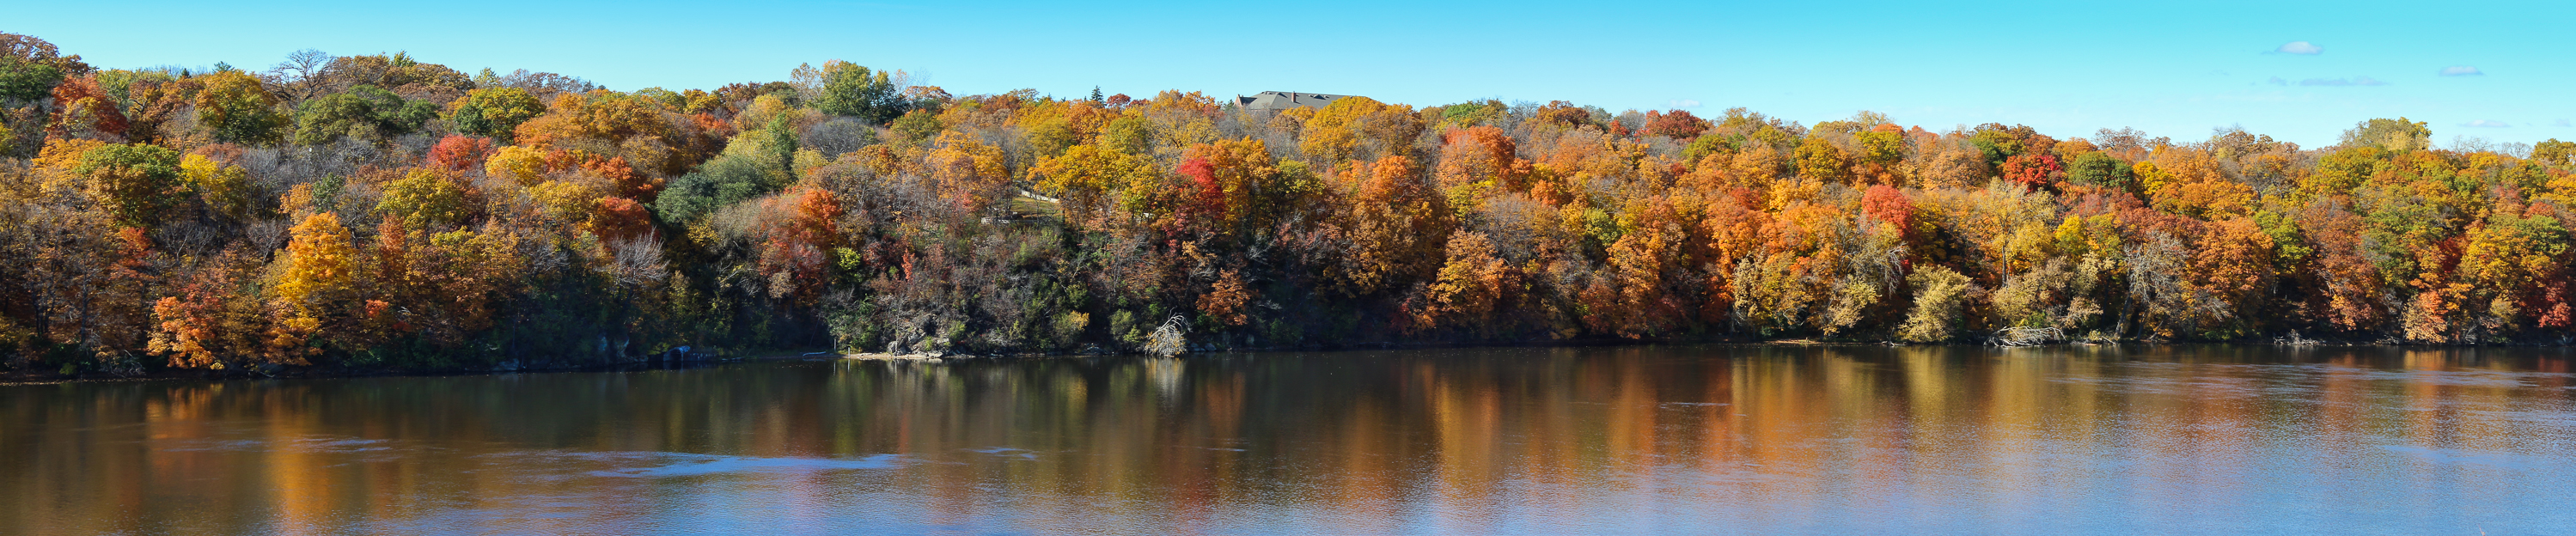 mississippi-river-fall-color